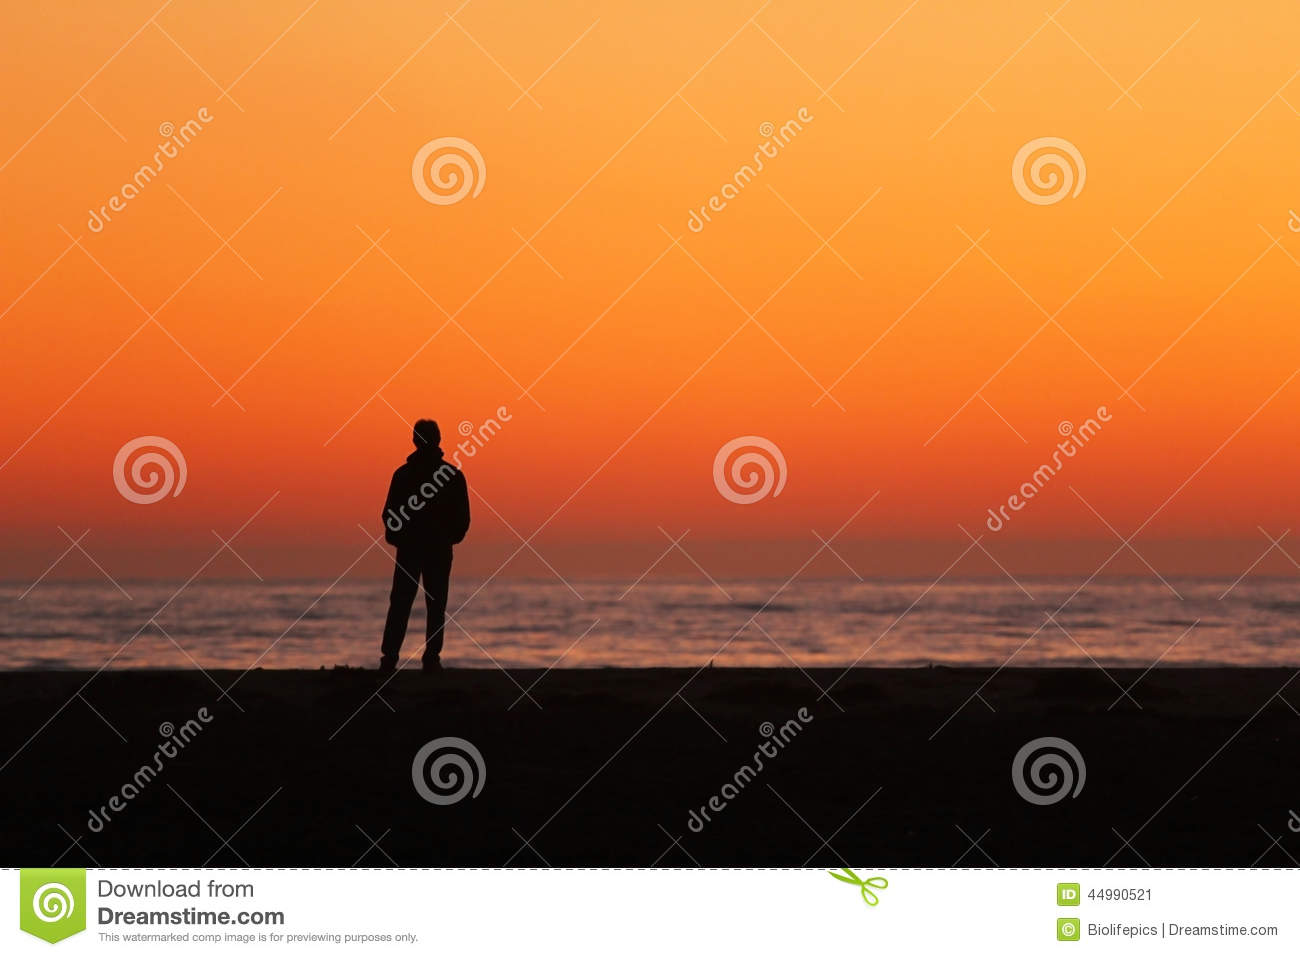 Silhouette of man standing by ocean